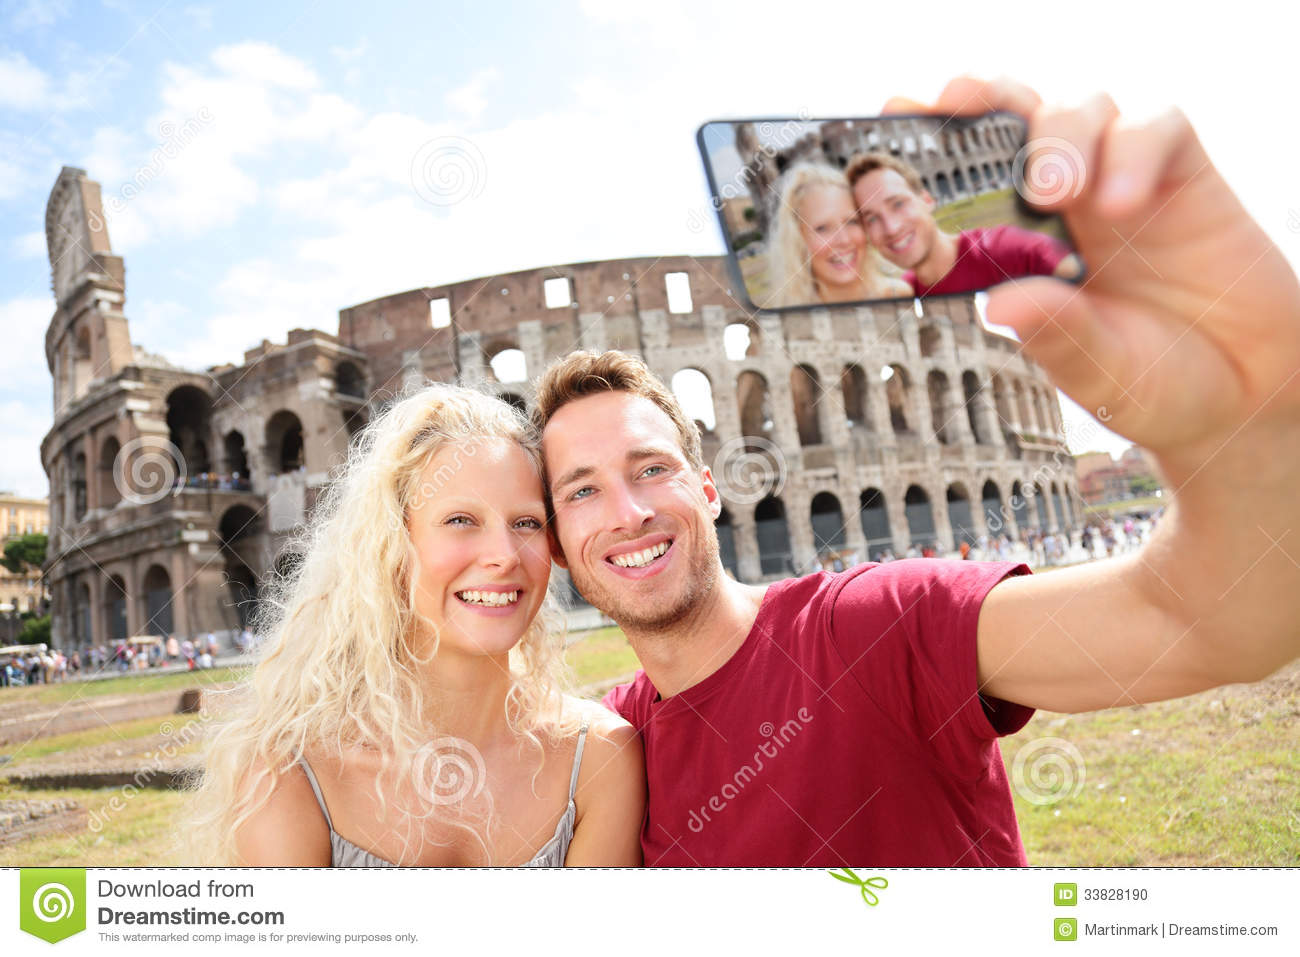 Europe Travel Taking A Selfie Stock Photo - Image of blue ... |Europe Tourist Taking